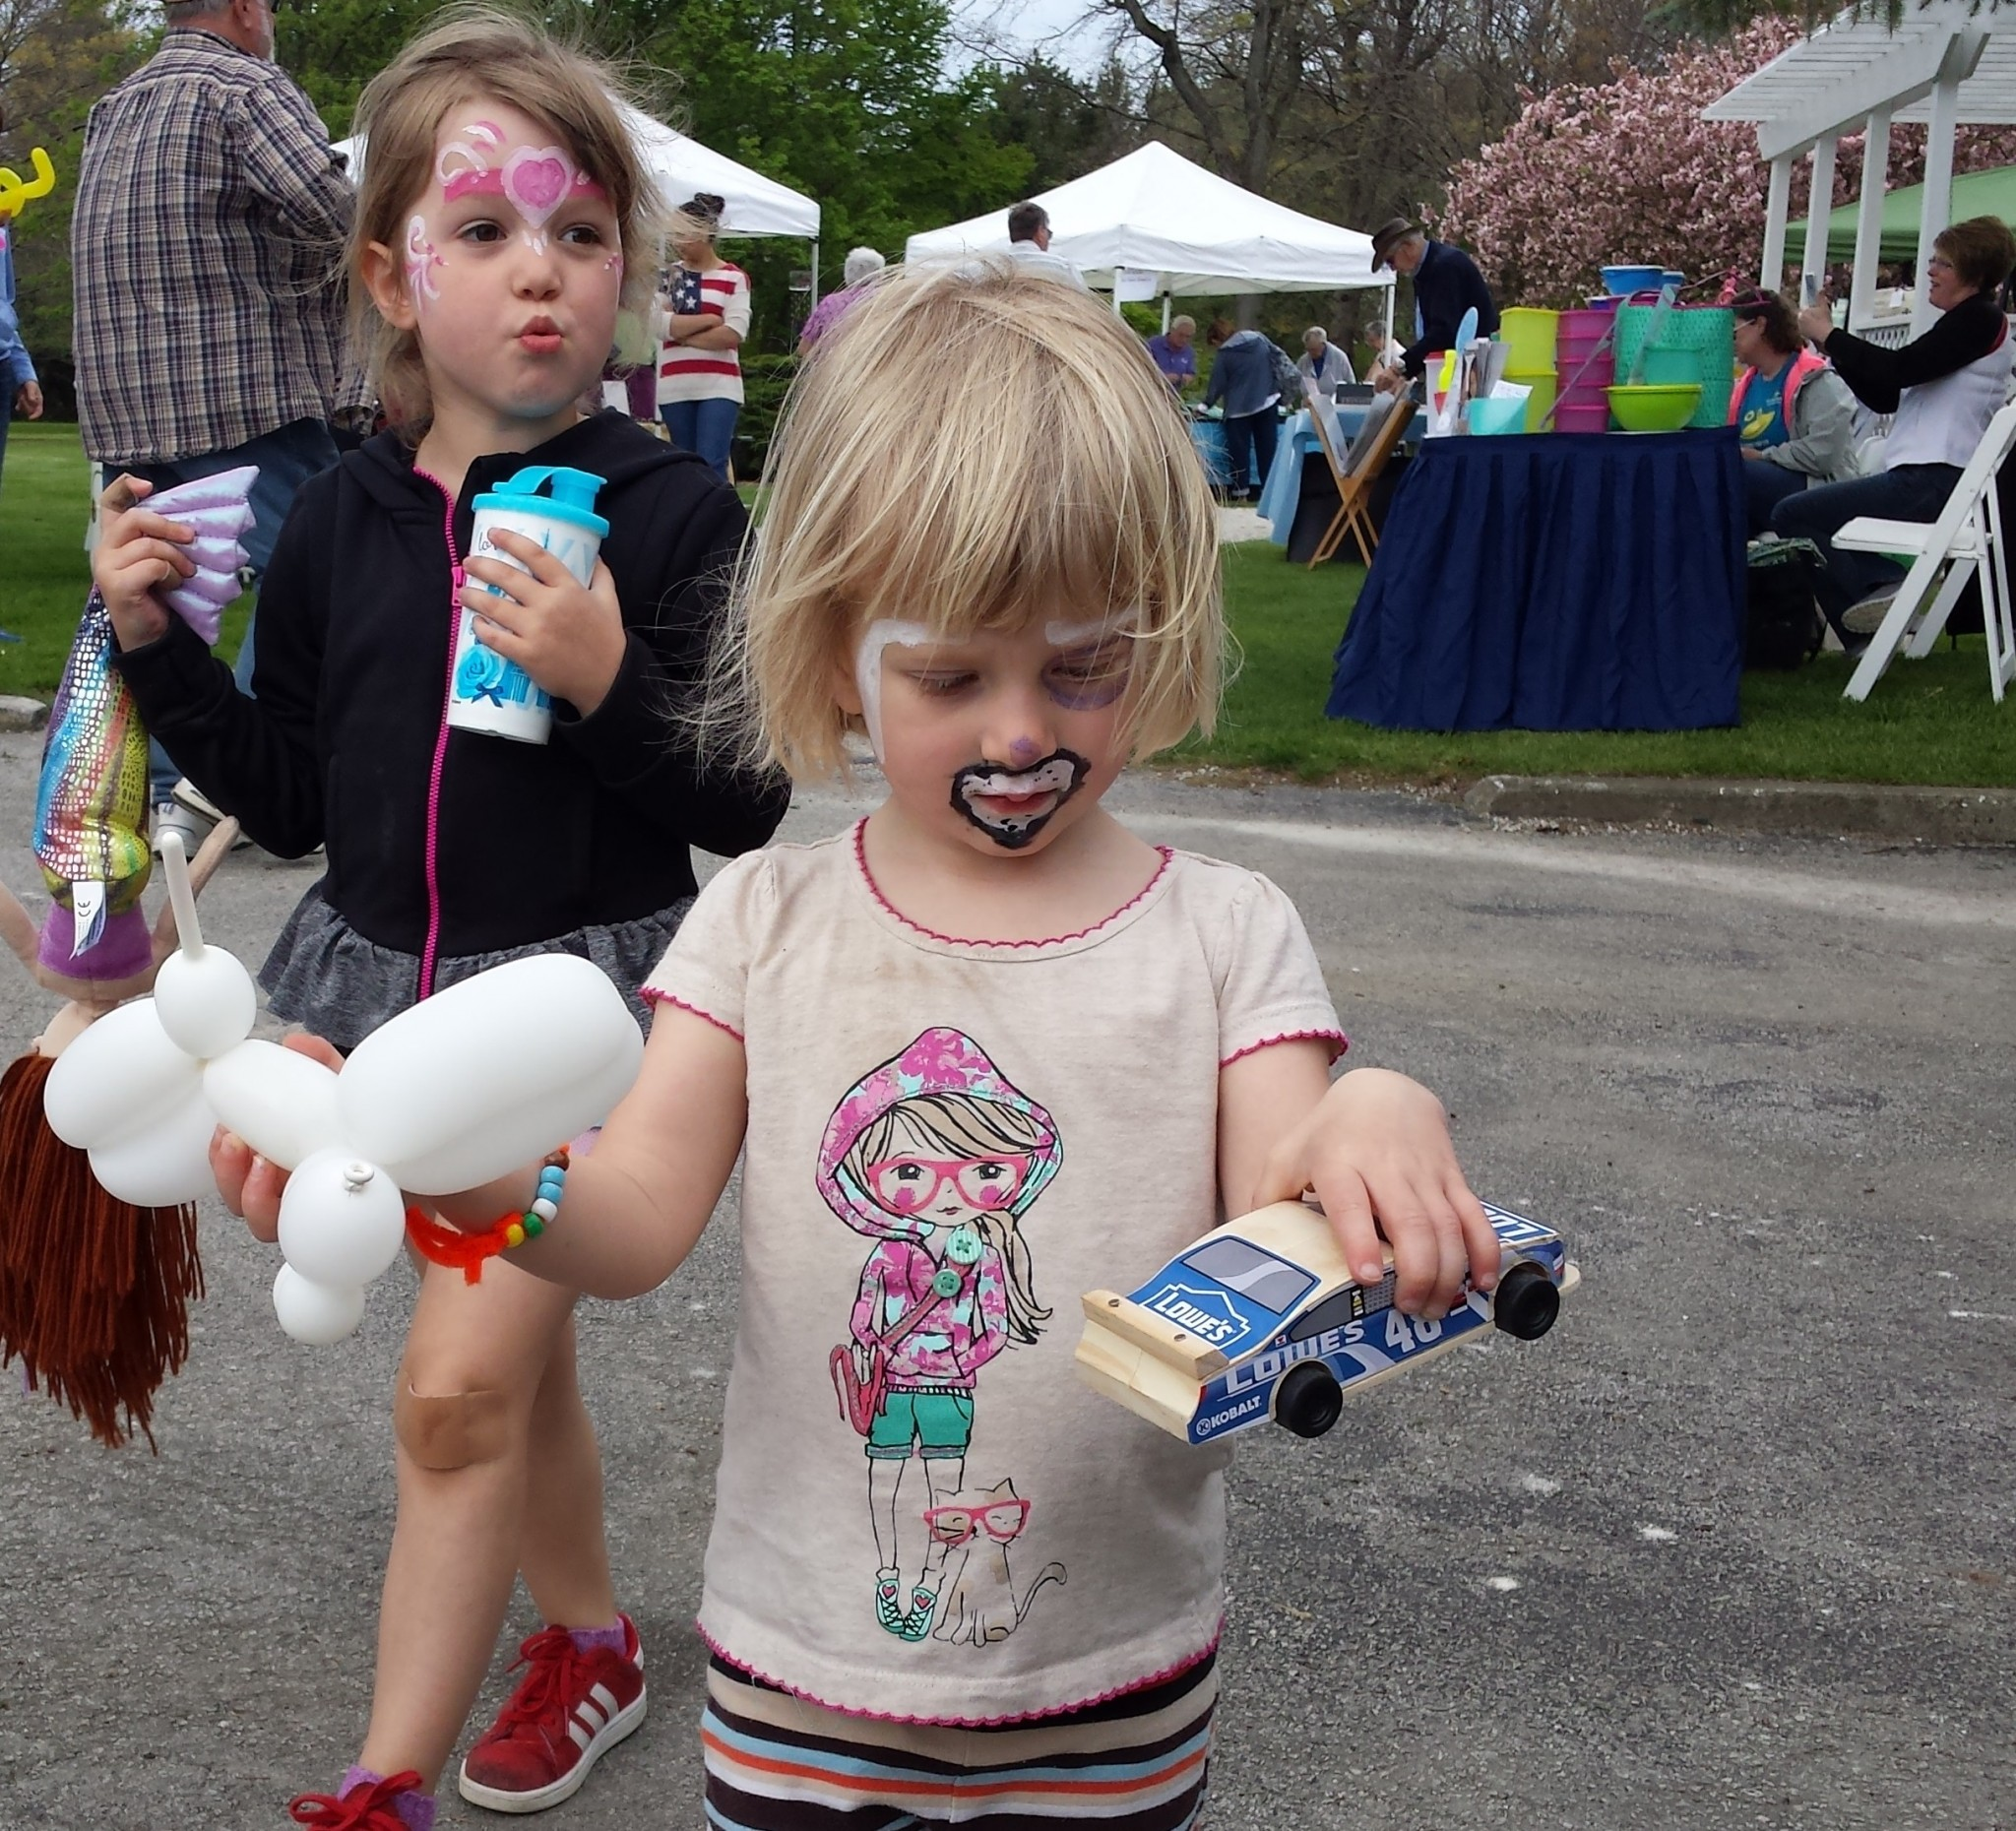 Visitors to this year's Community Day Festival at Schedel Arboretum & Gardens, set for May 11, will find a wide variety of demonstrations, exhibits and vendors, along with food, music and more. (Submitted photo)